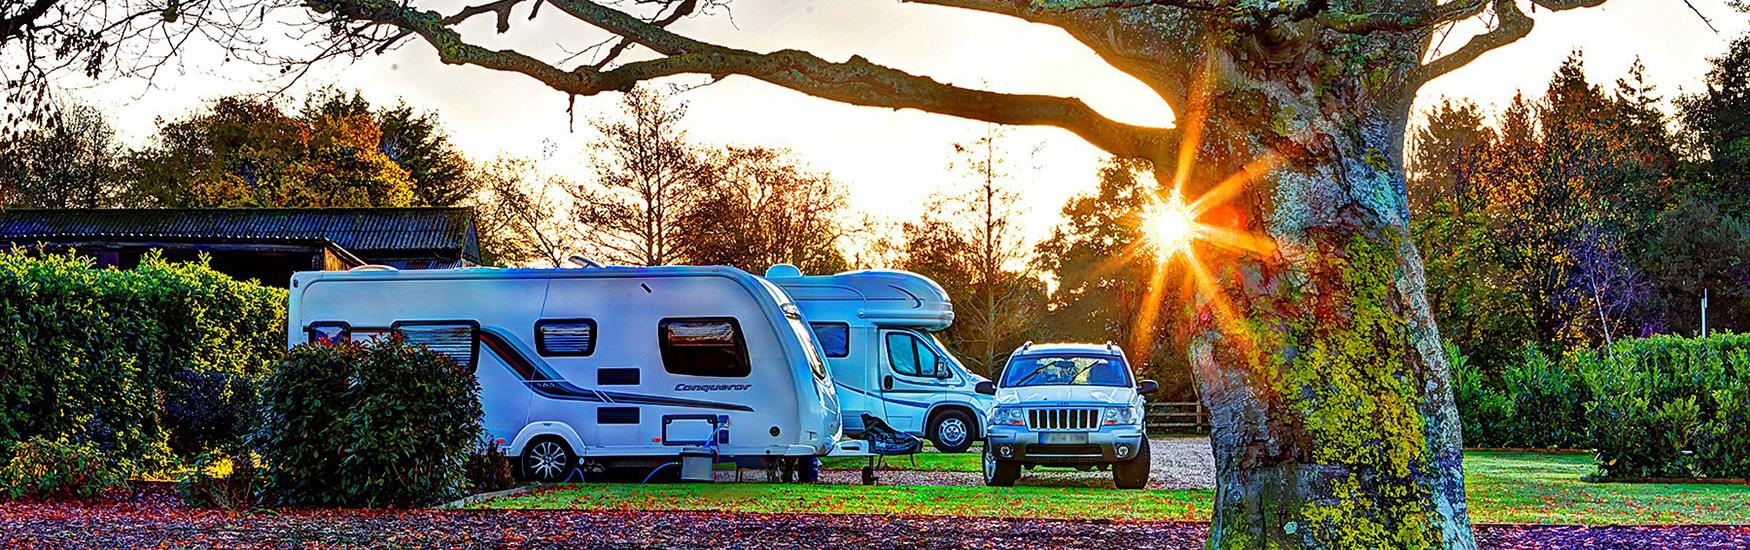 Caravans lined up in parked with the sun setting behind the trees